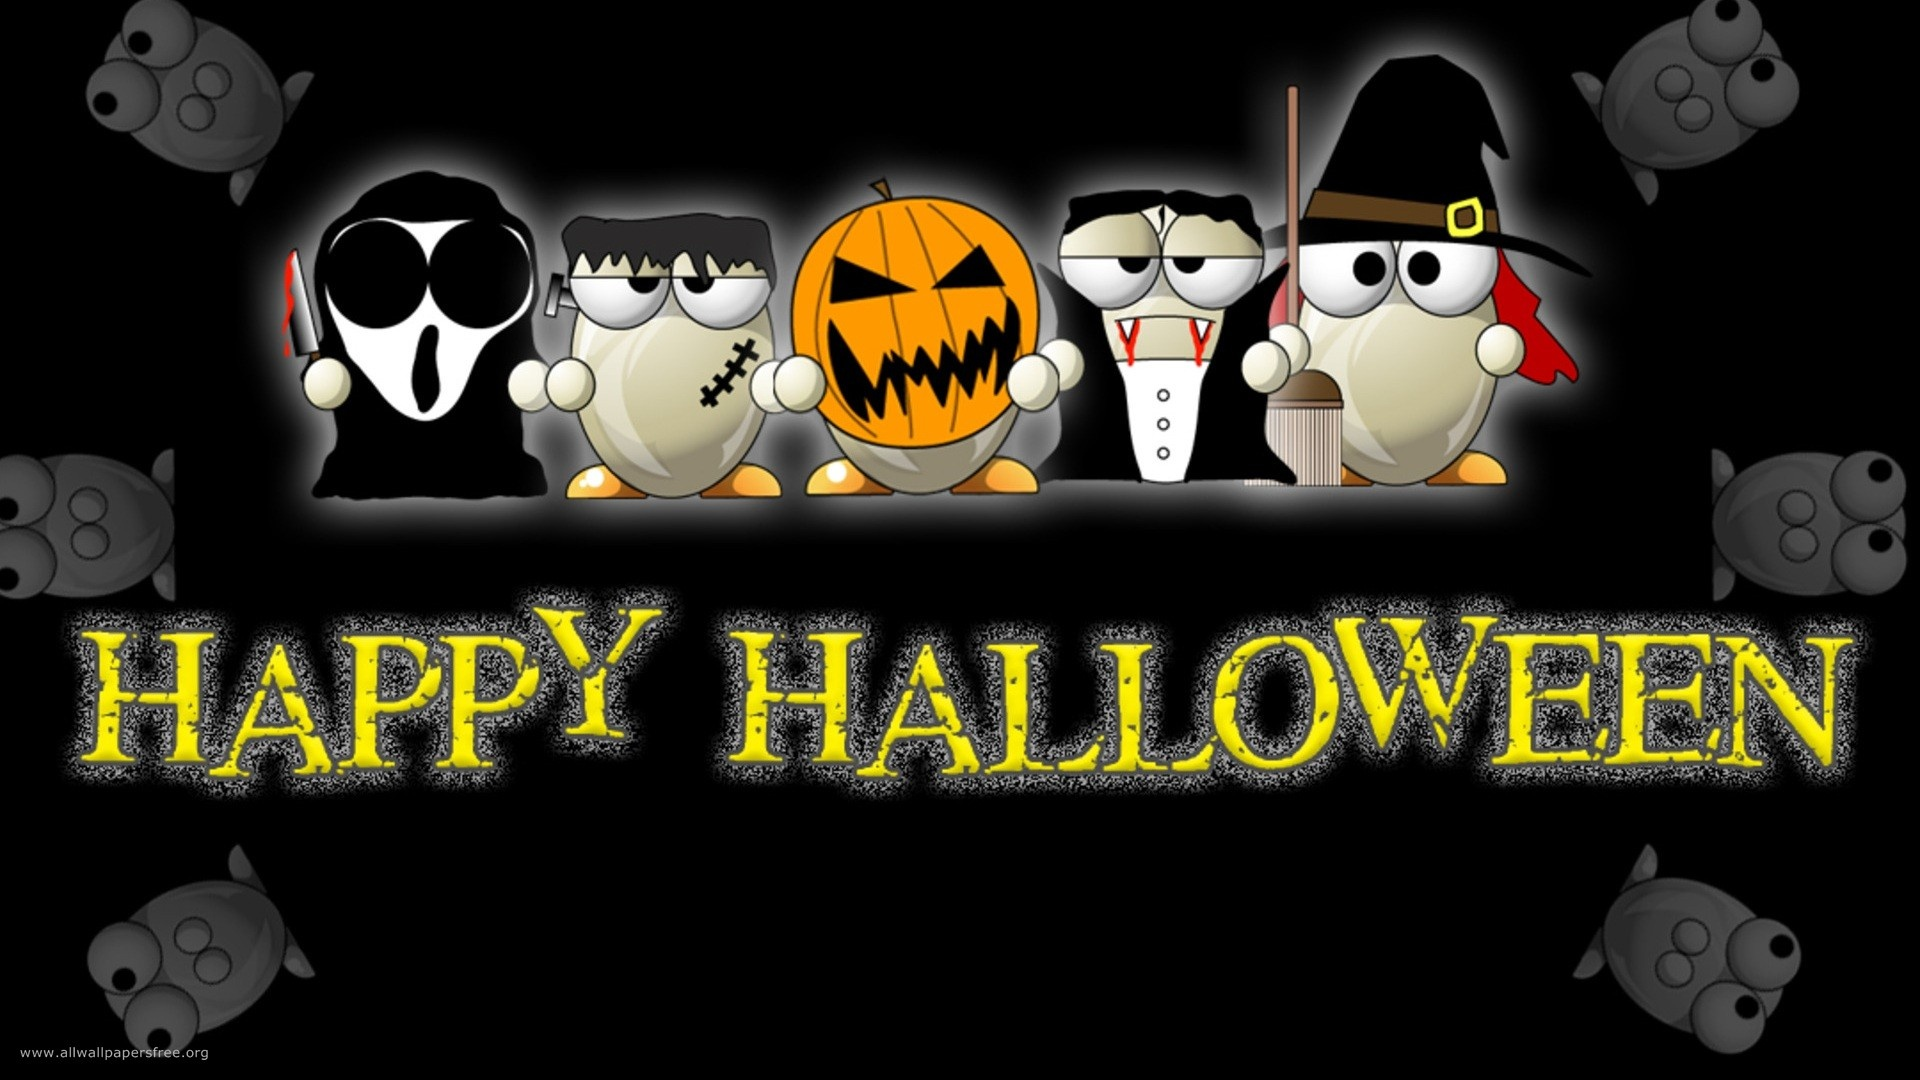 happy halloween picture hd wallpaper FREE 4U WALLPAPERS 1920x1080